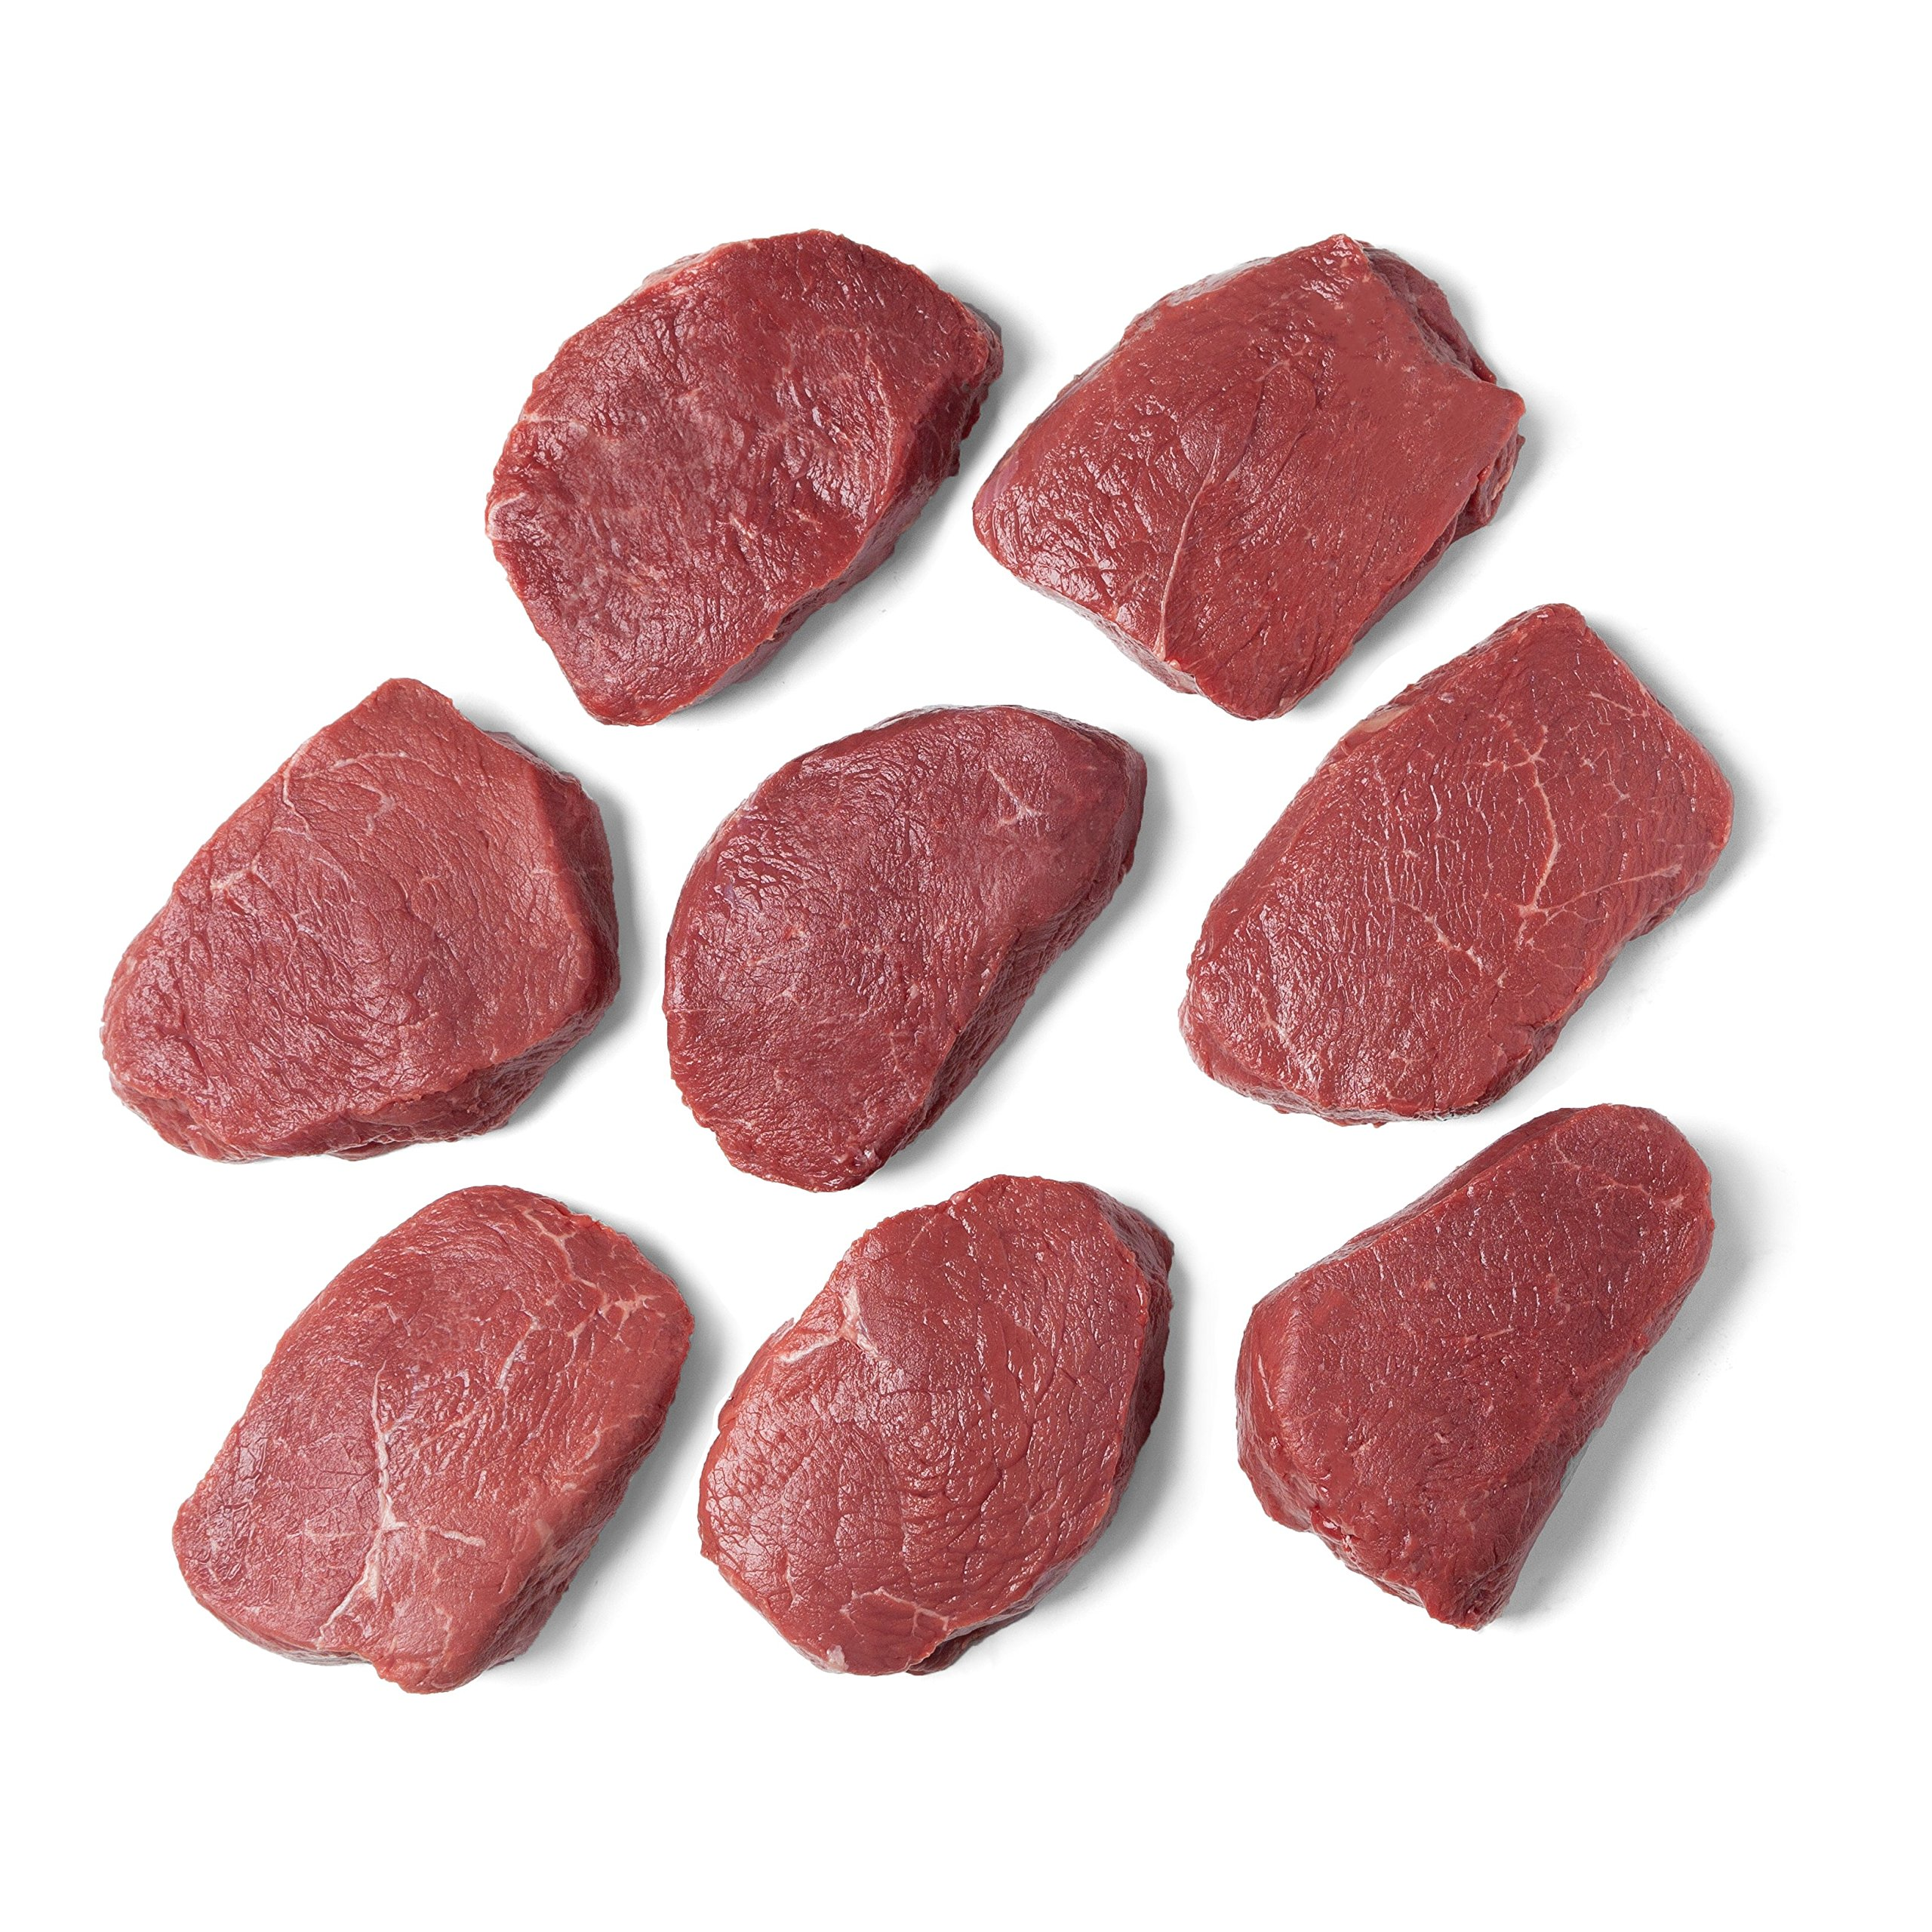 Pre, 8 (8 oz.) Top Sirloin Steaks – 100% Grass-Fed, Grass-Finished, and Pasture-Raised Beef